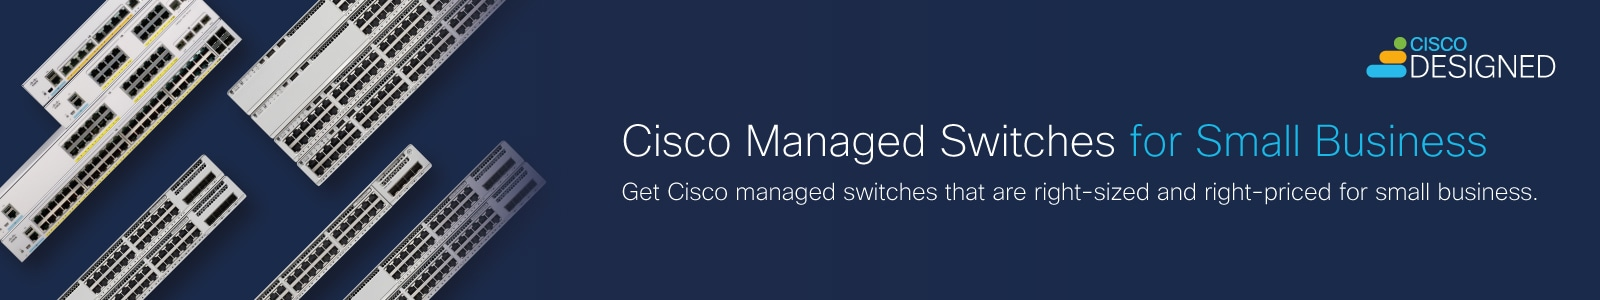 Cisco Managed Switches for Small Business